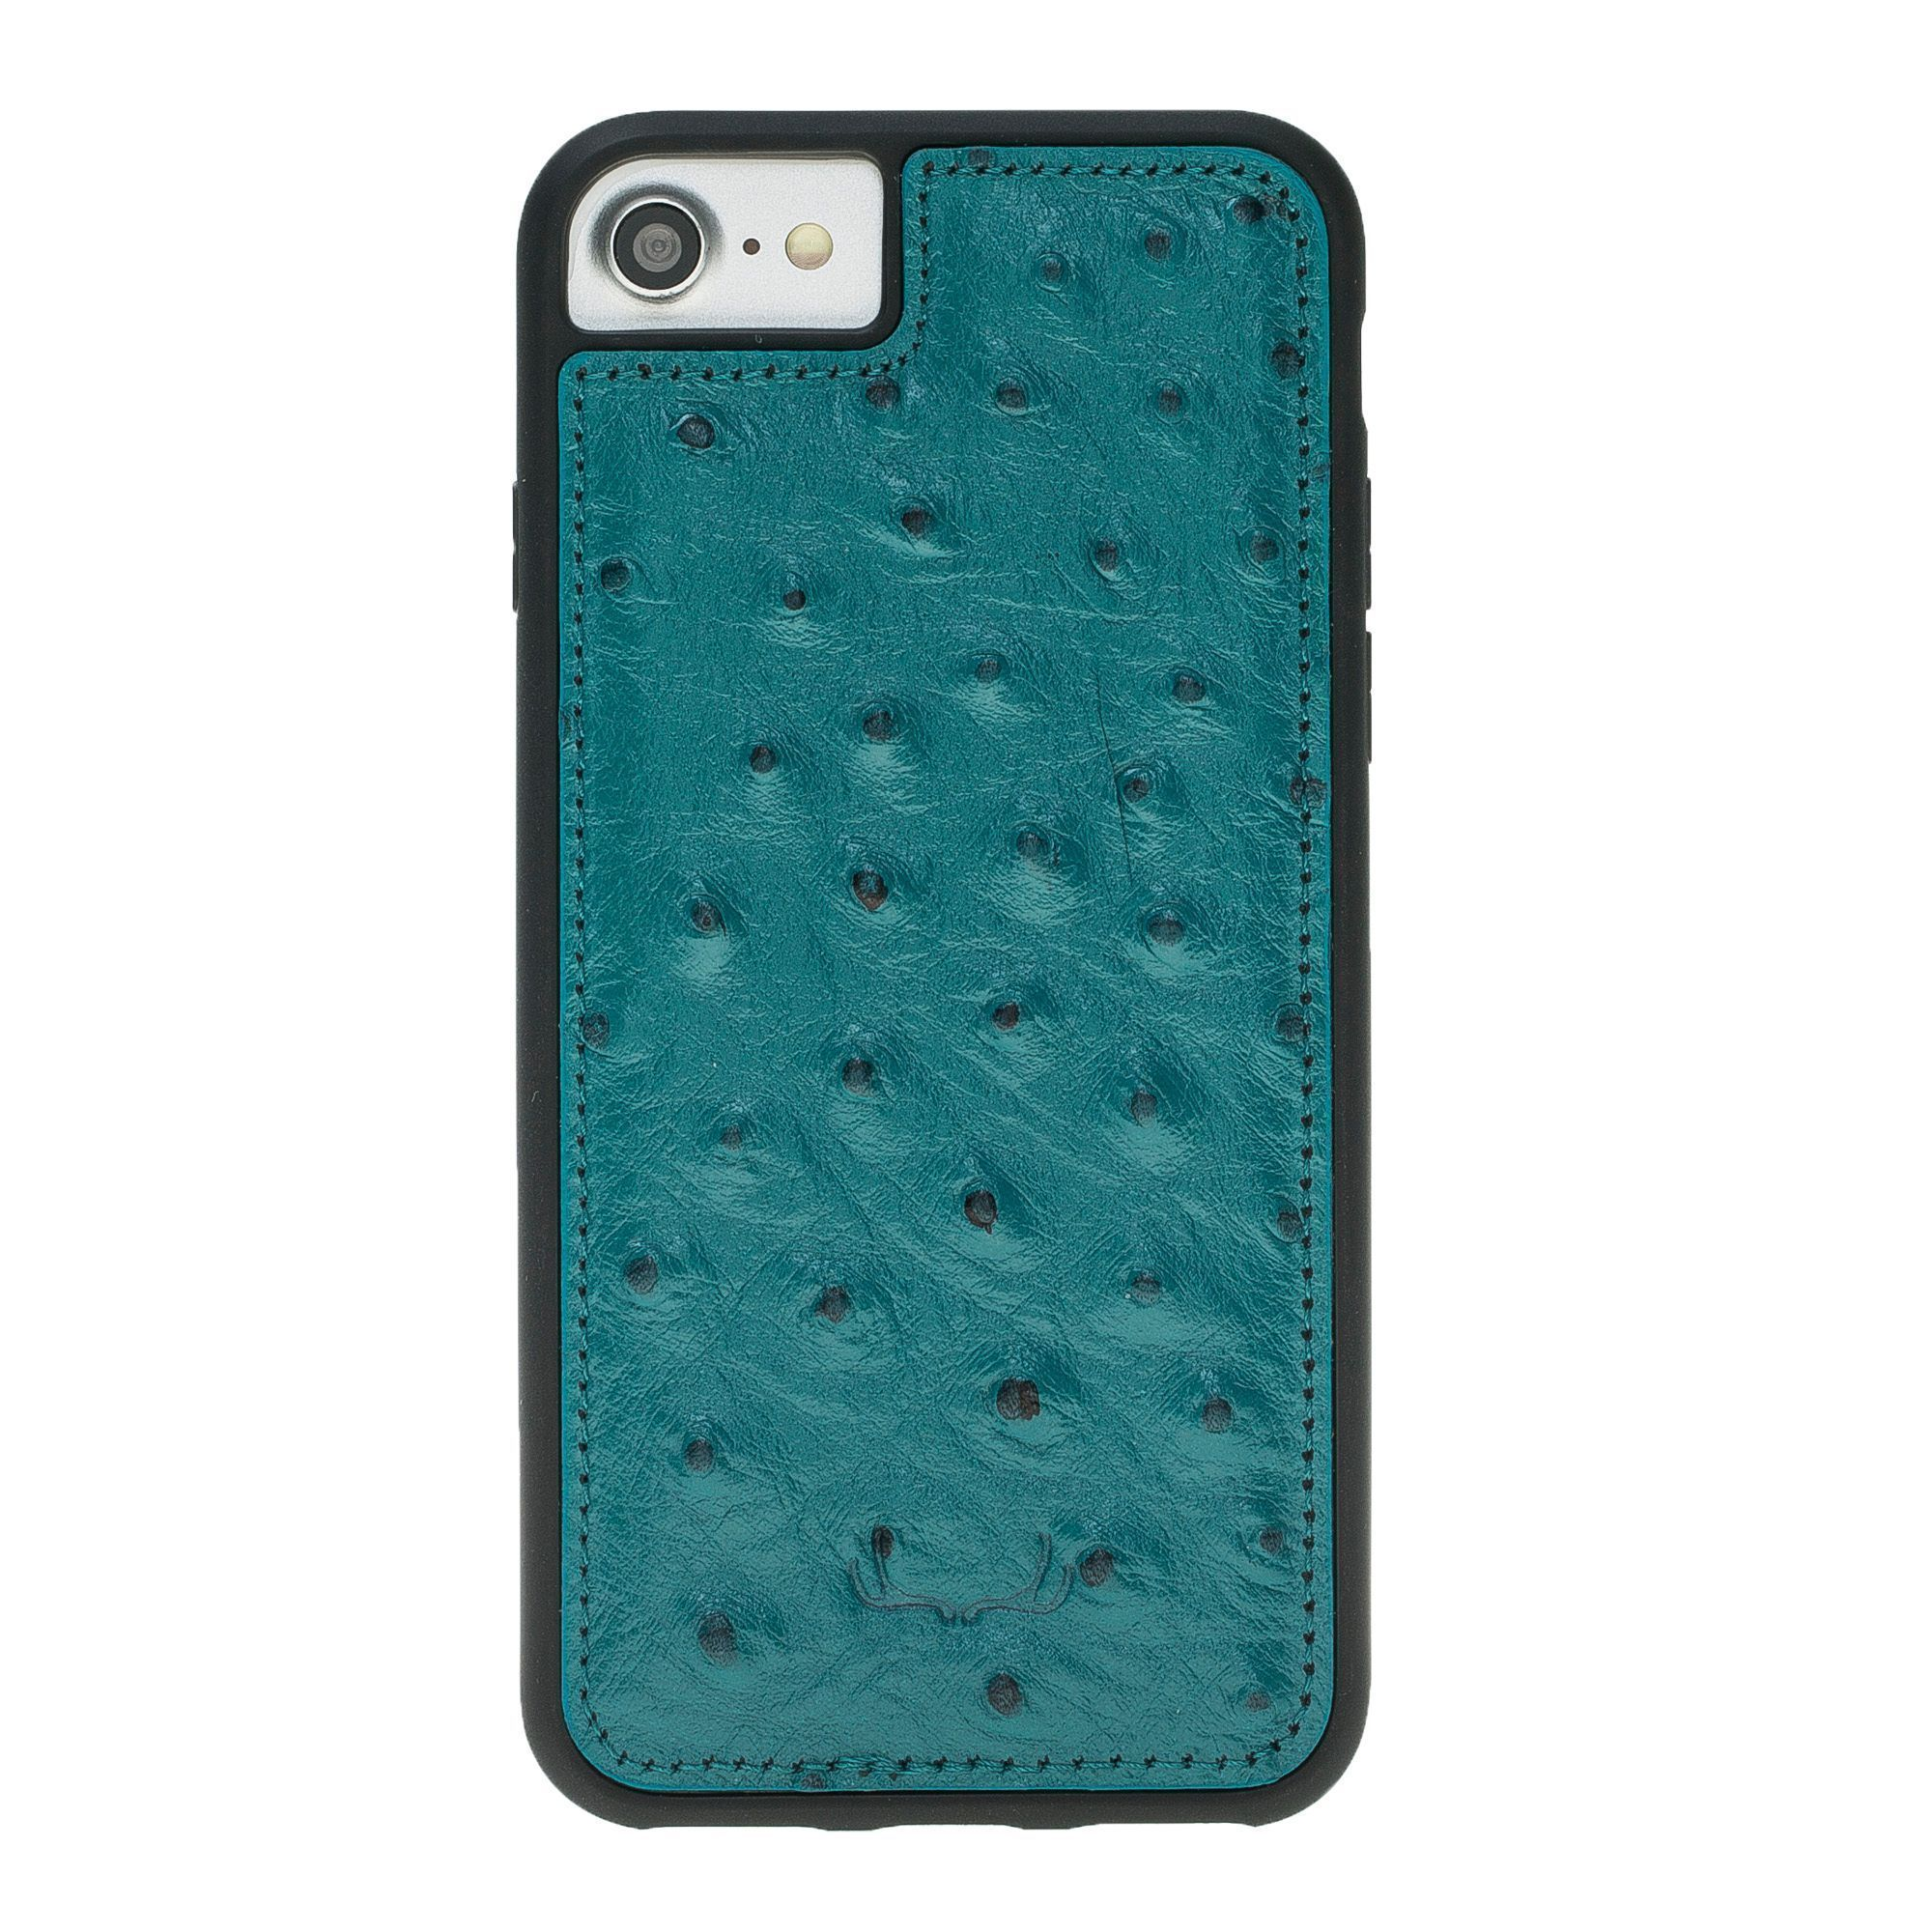 BNT Flex Cover Leather Cases - Ostrich - iPhone 7/8 - Turquoise